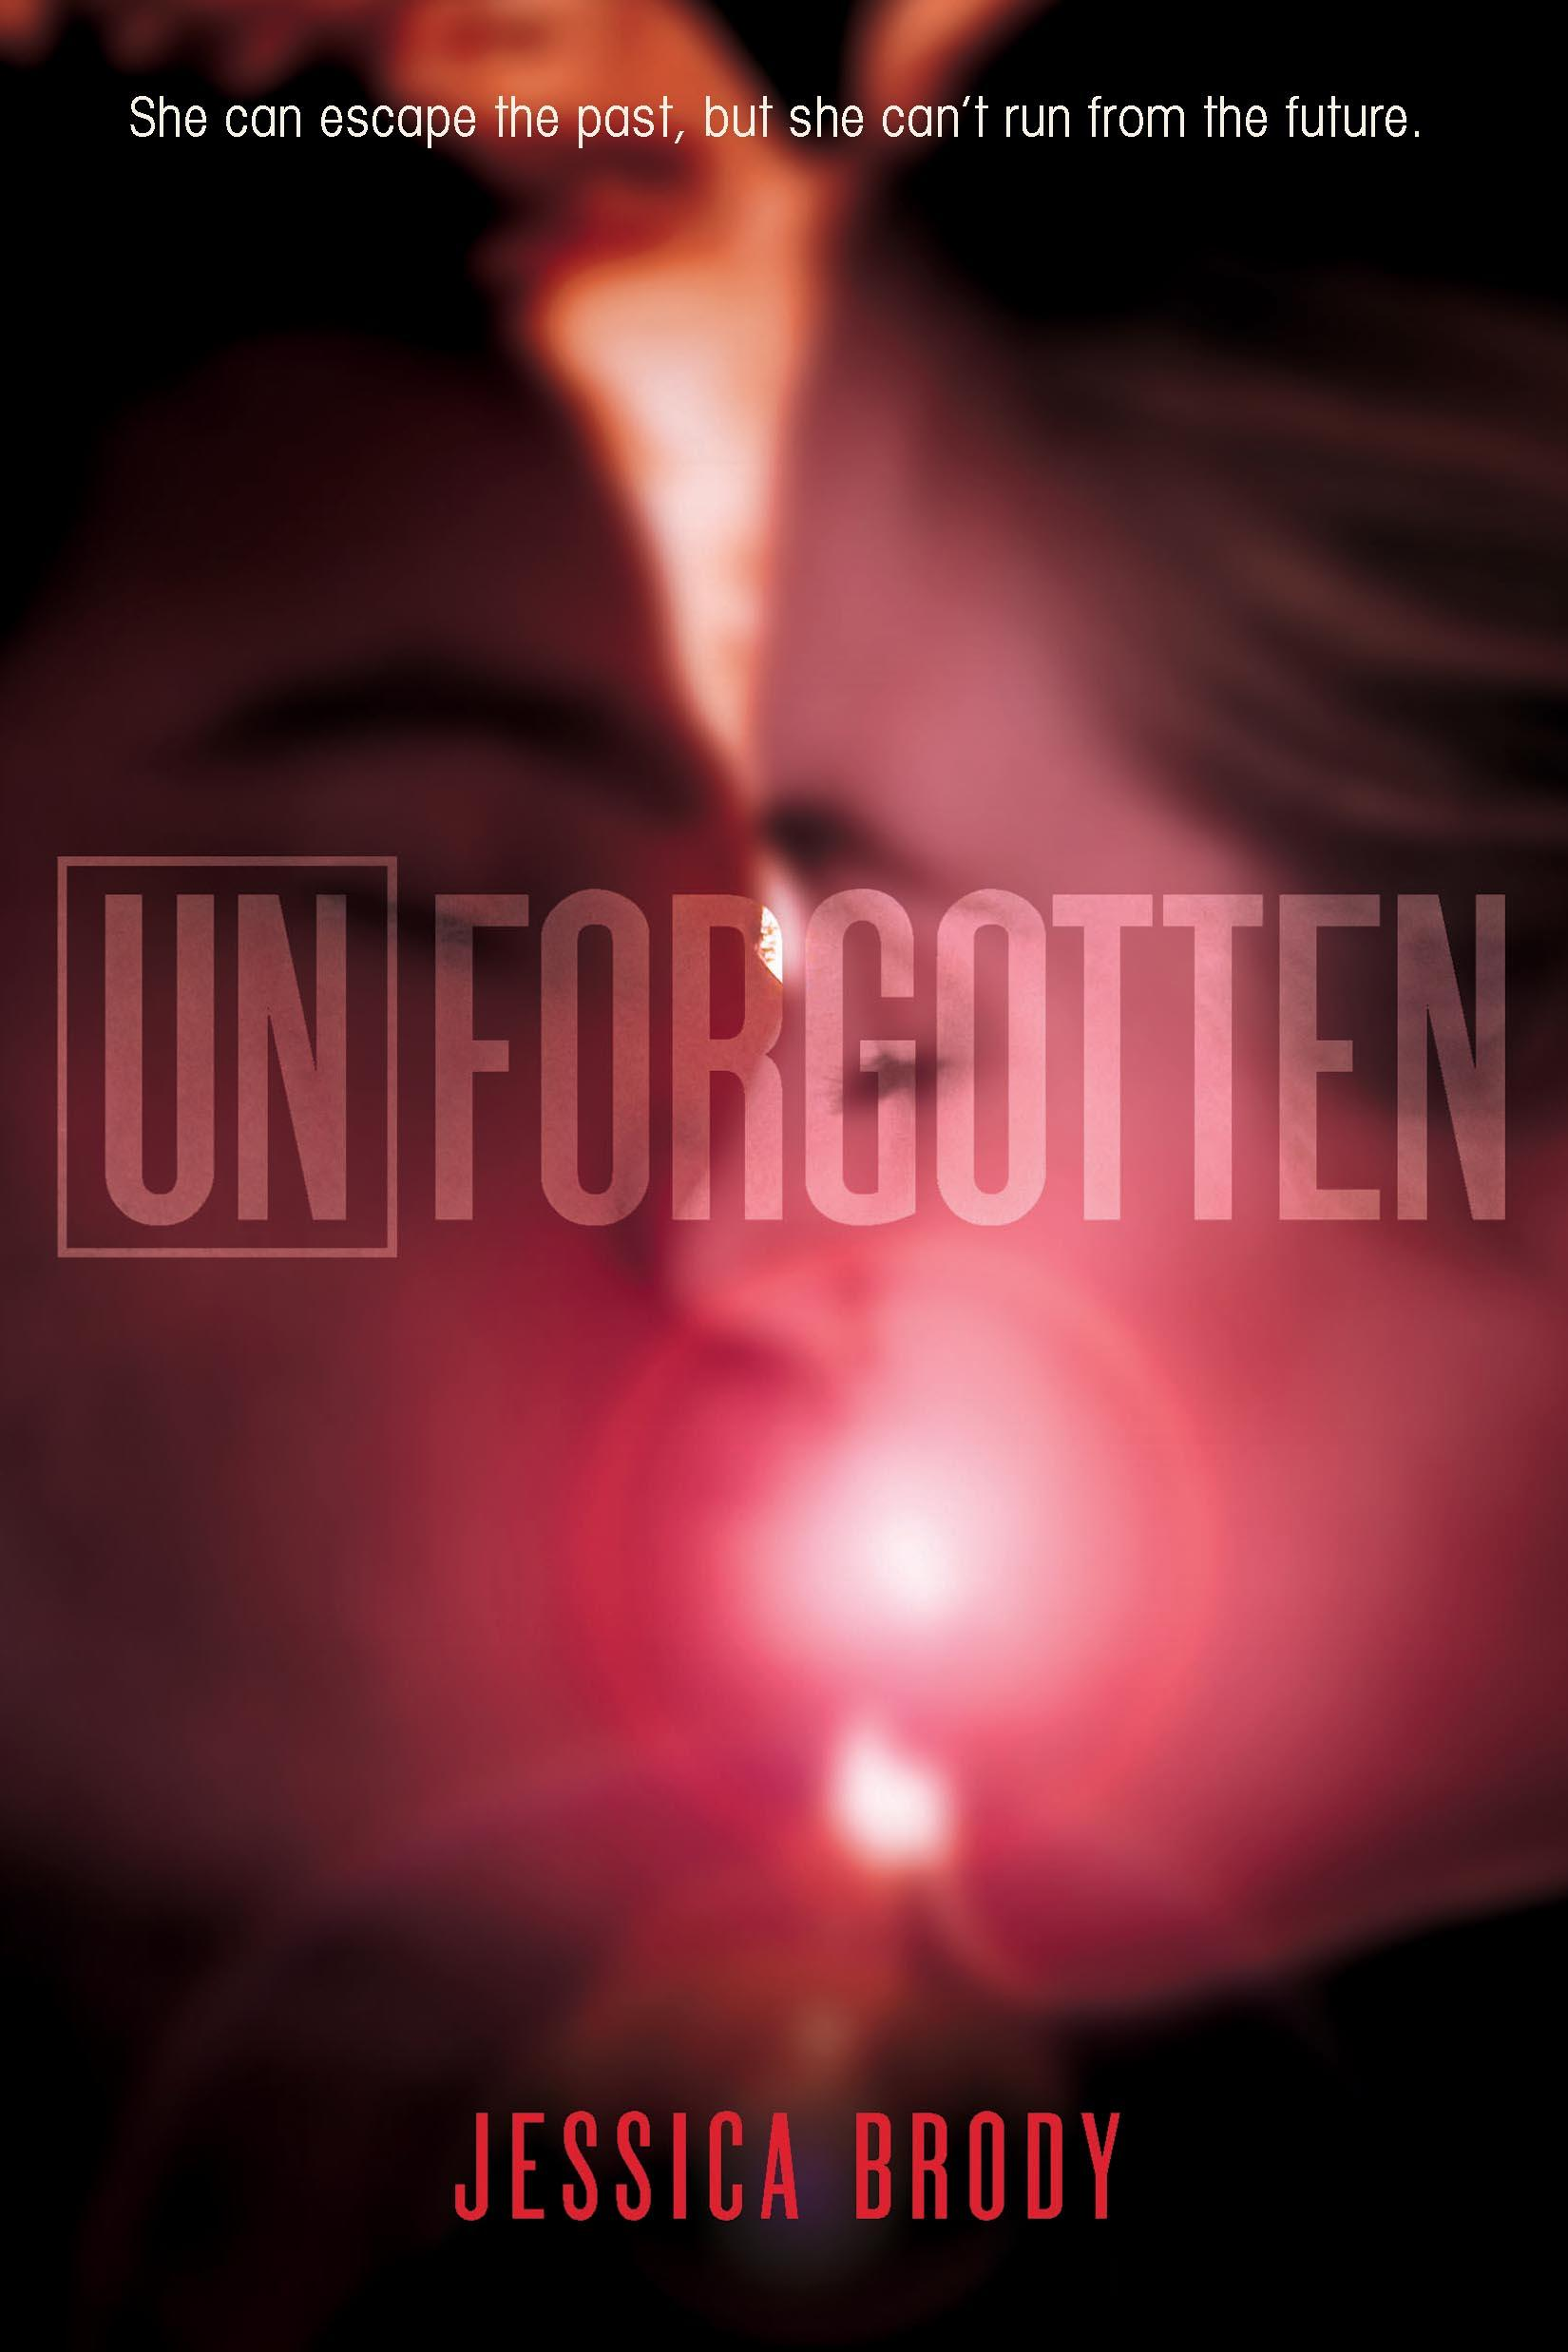 http://www.amazon.com/Unforgotten-Unremembered-Jessica-Brody/dp/0374379904/ref=tmm_hrd_title_0?ie=UTF8&qid=1396358697&sr=1-3